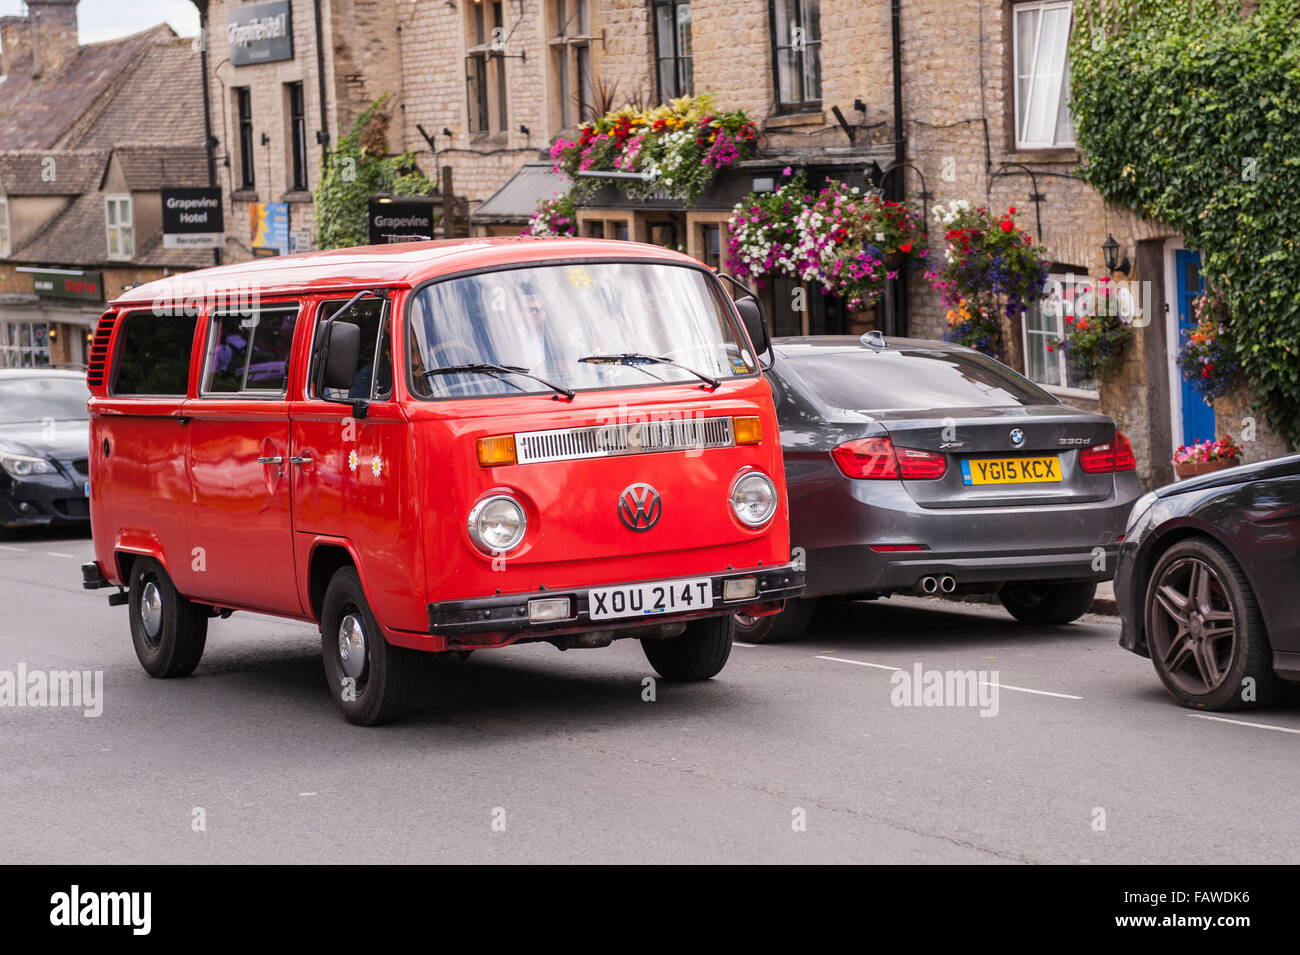 An old red VW campervan in the Uk - Stock Image